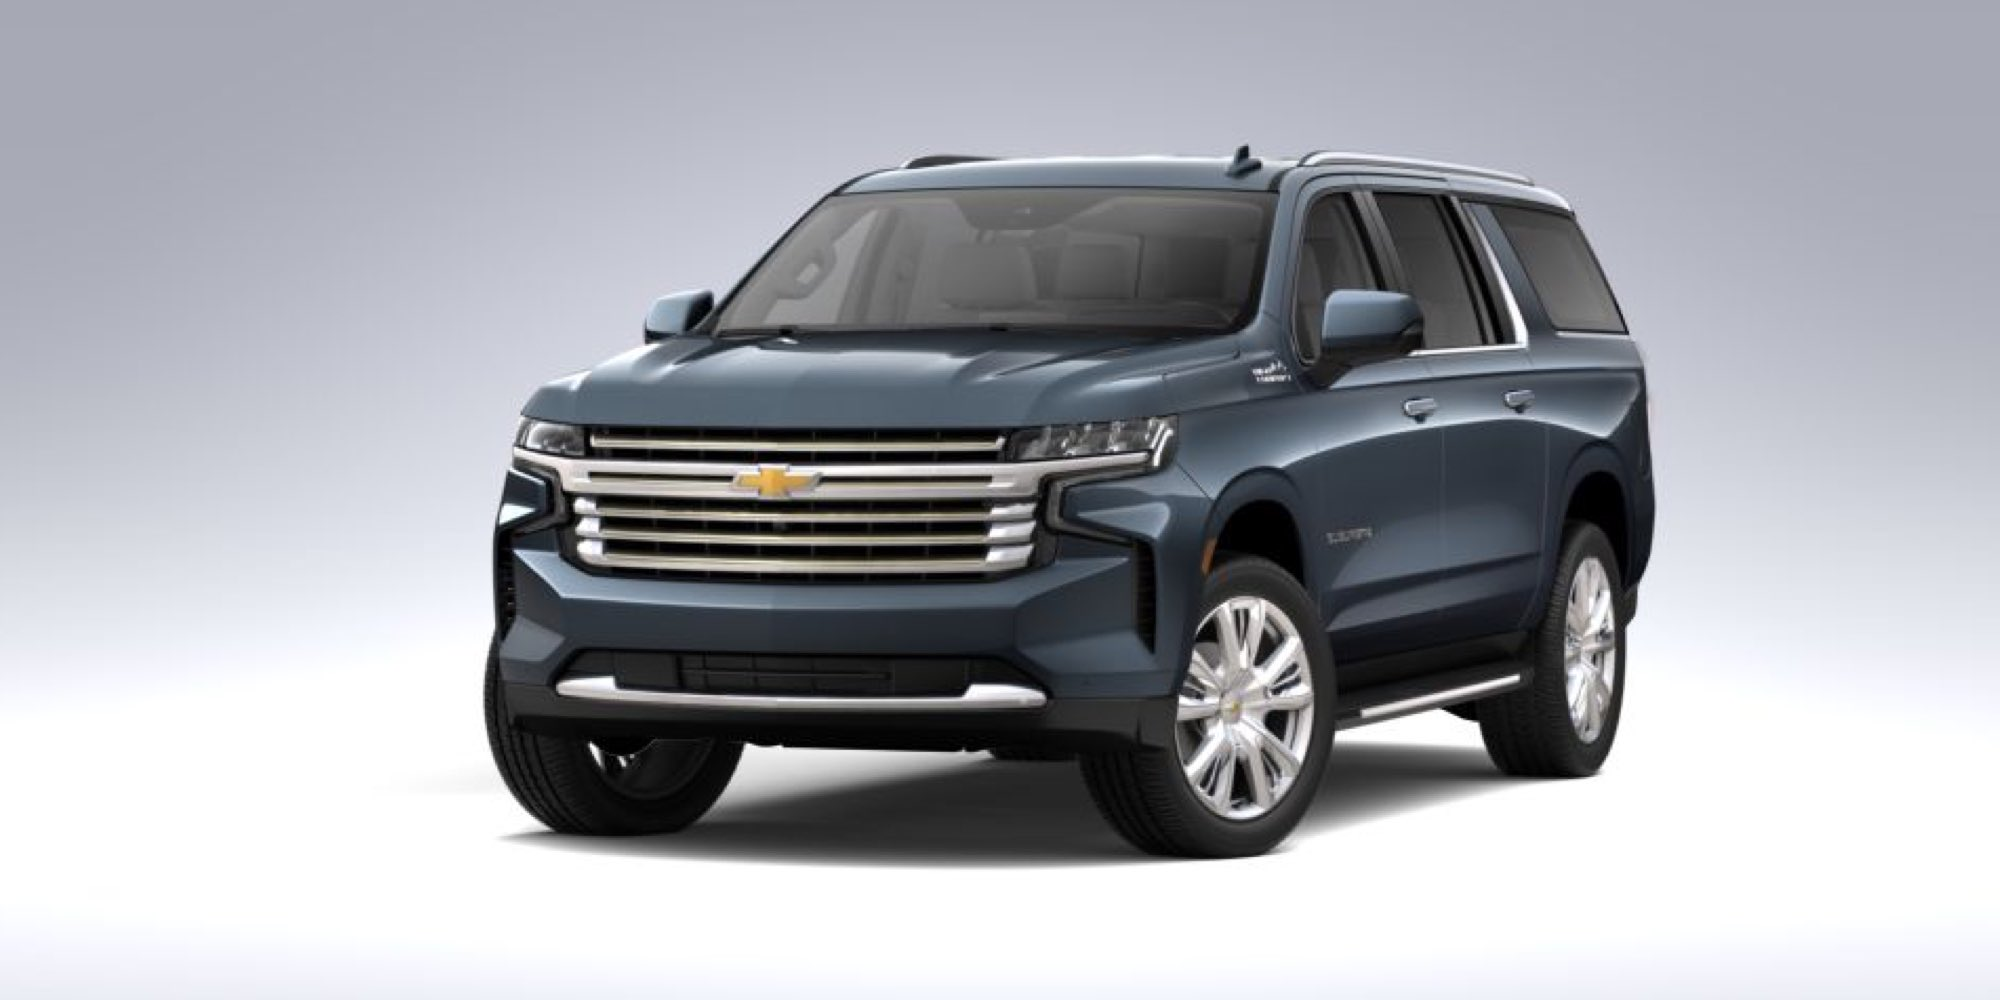 2021 Chevy Suburban in Shadow Gray Metallic